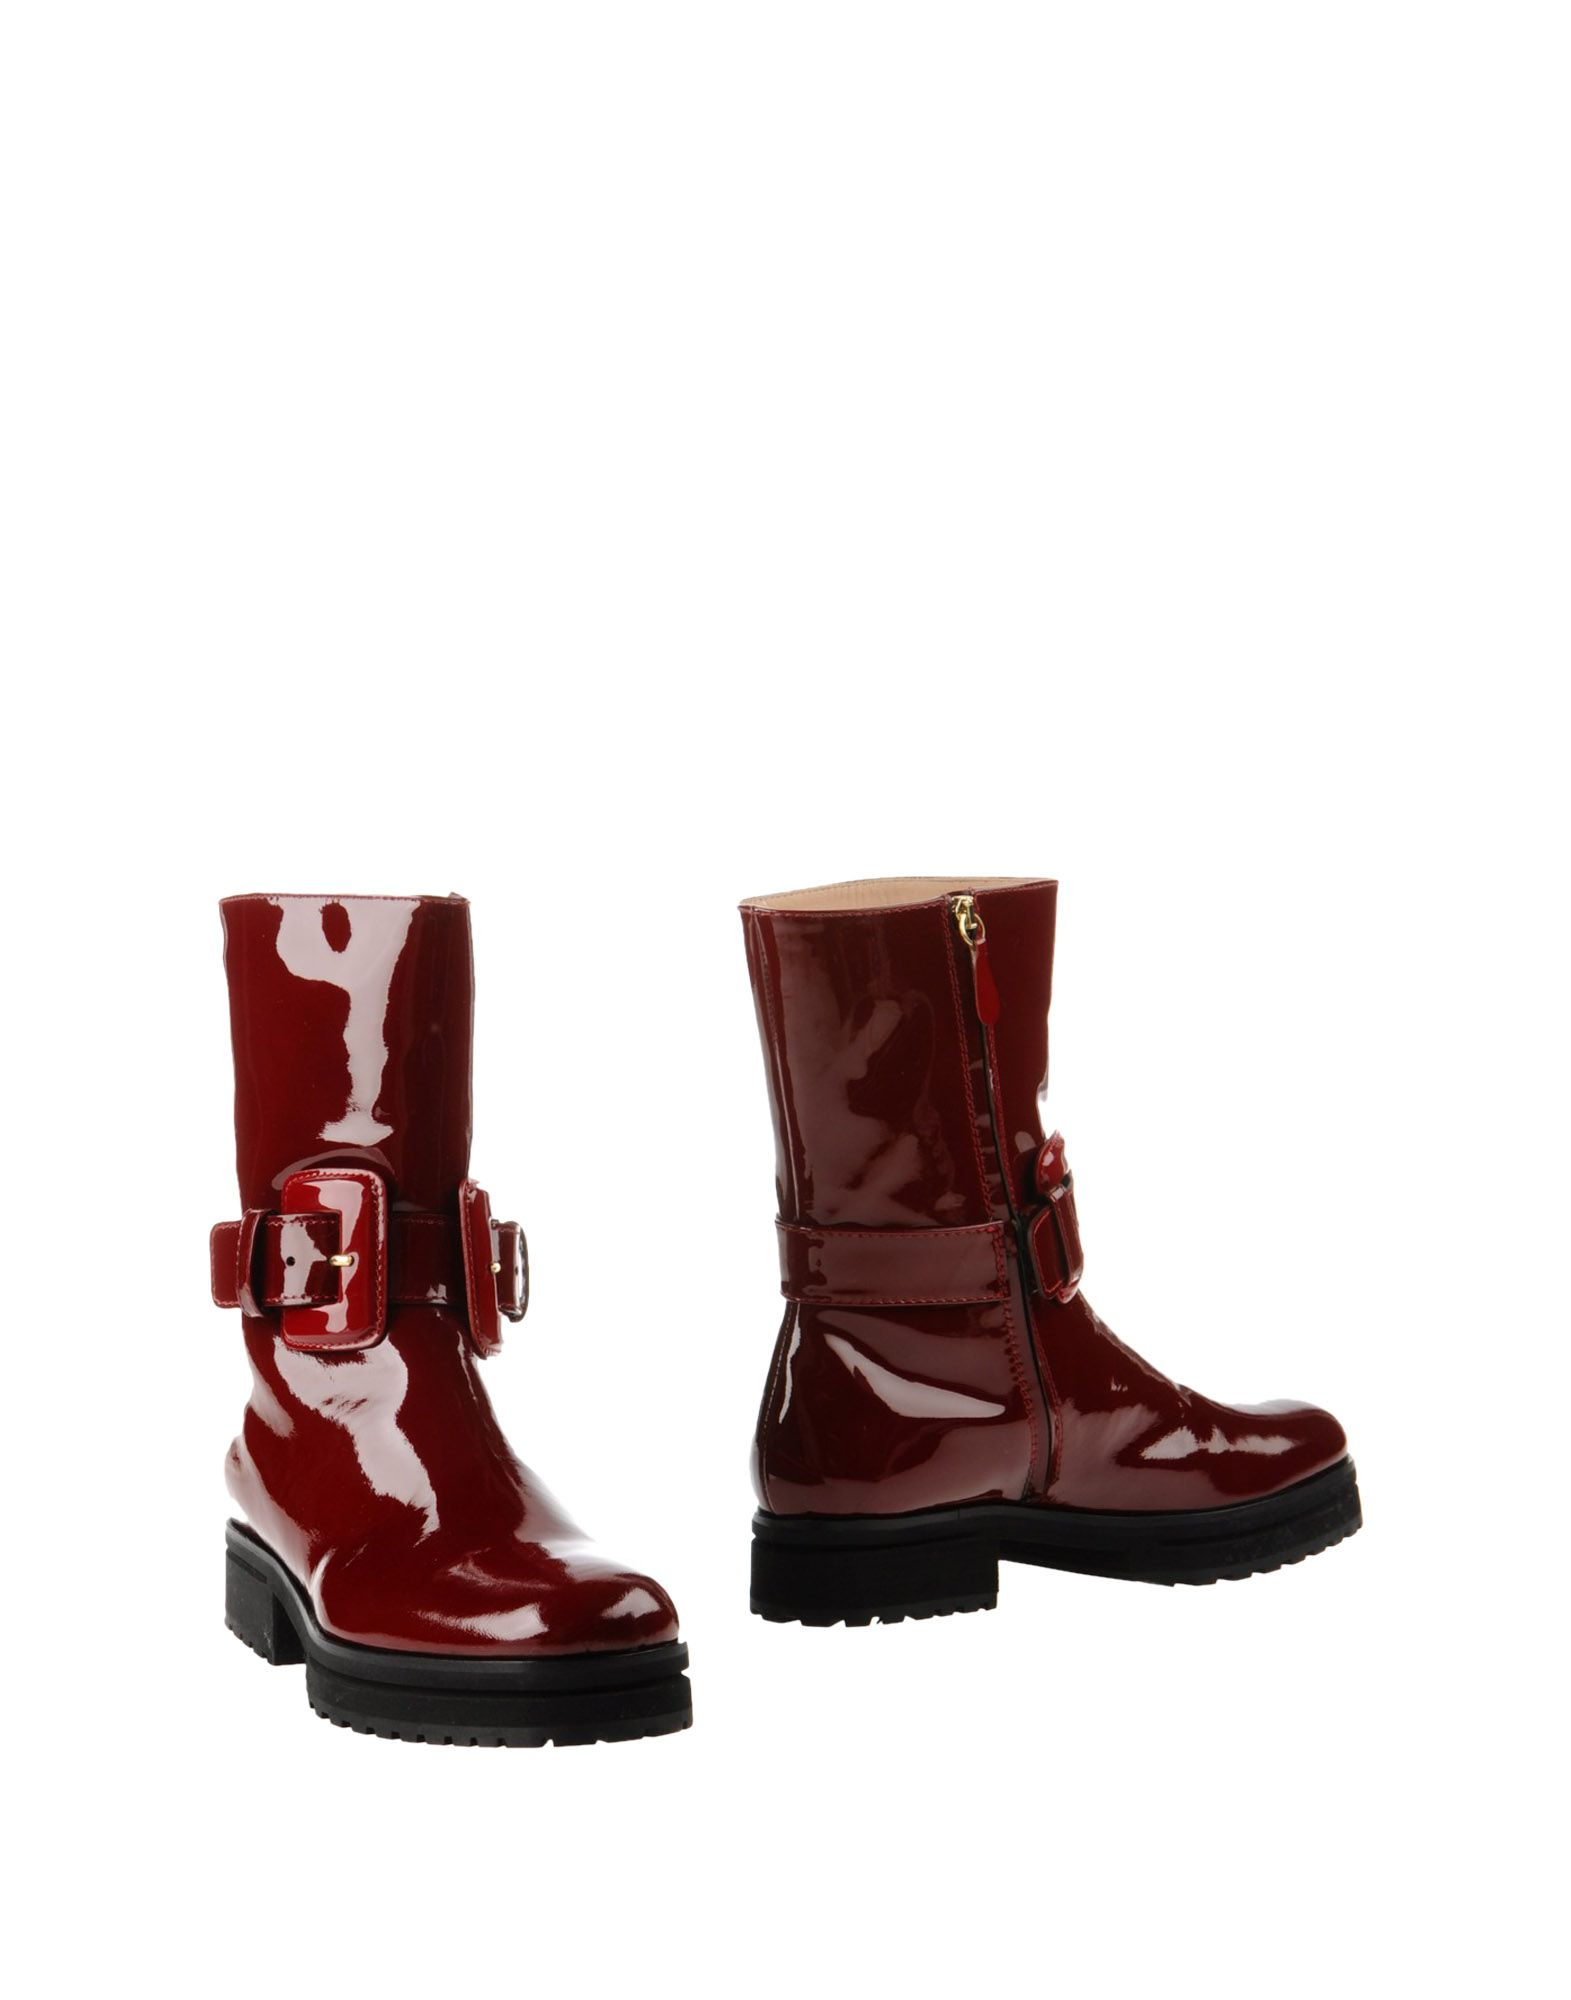 VIKTOR & ROLF Ankle boots outlet cost discount official rHvVd